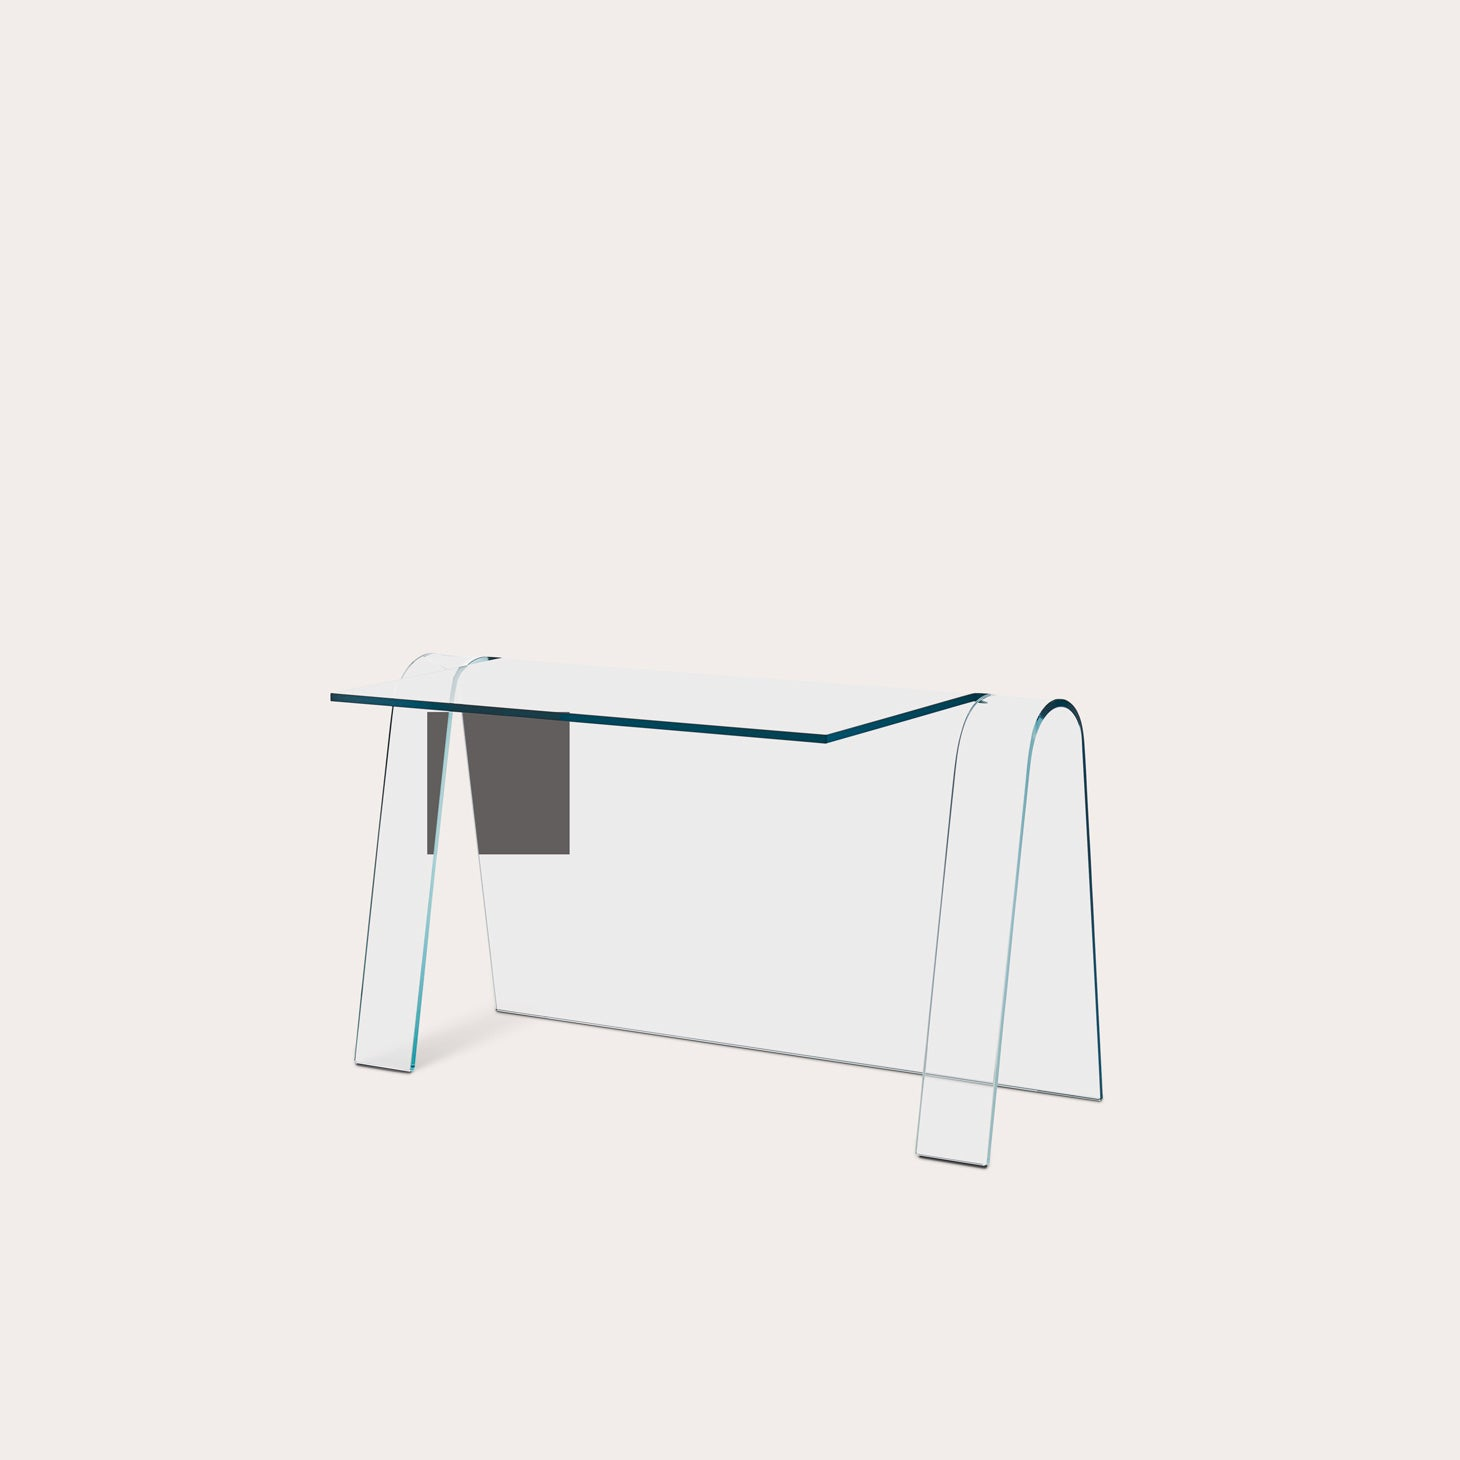 Folio Tables Yabu Pushelberg Designer Furniture Sku: 288-230-10201